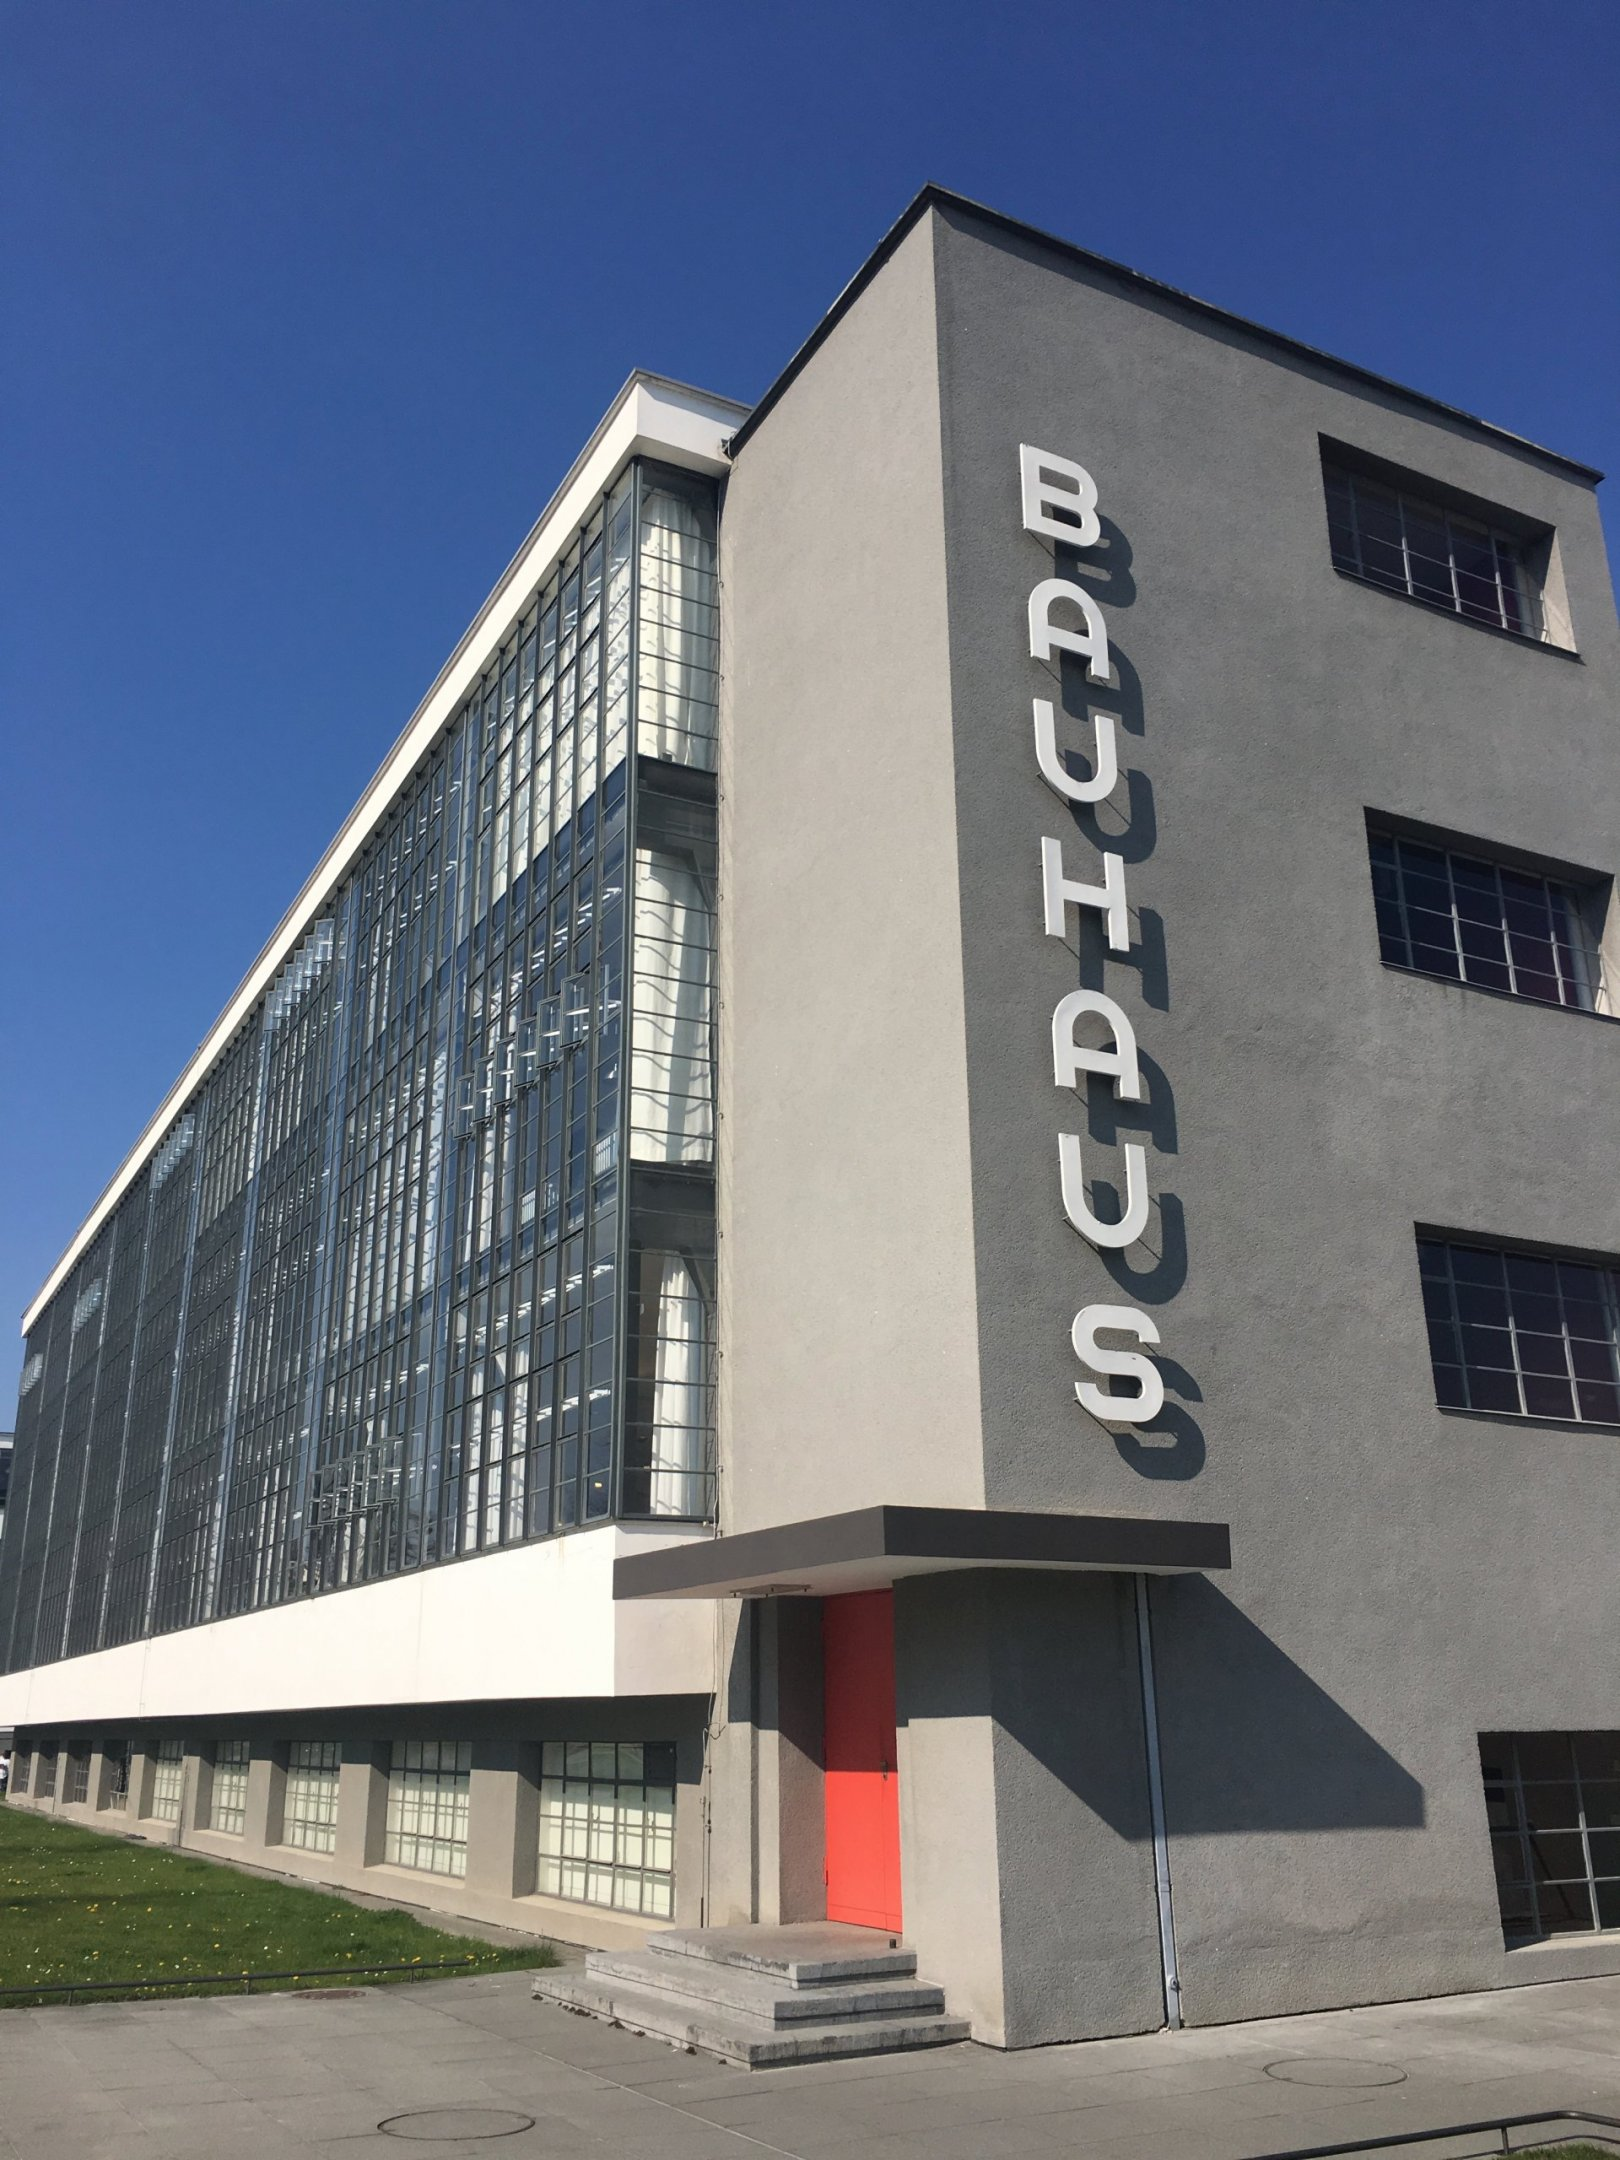 space&designSTRATEGIES Bauhaus Exkursion 08.04.19